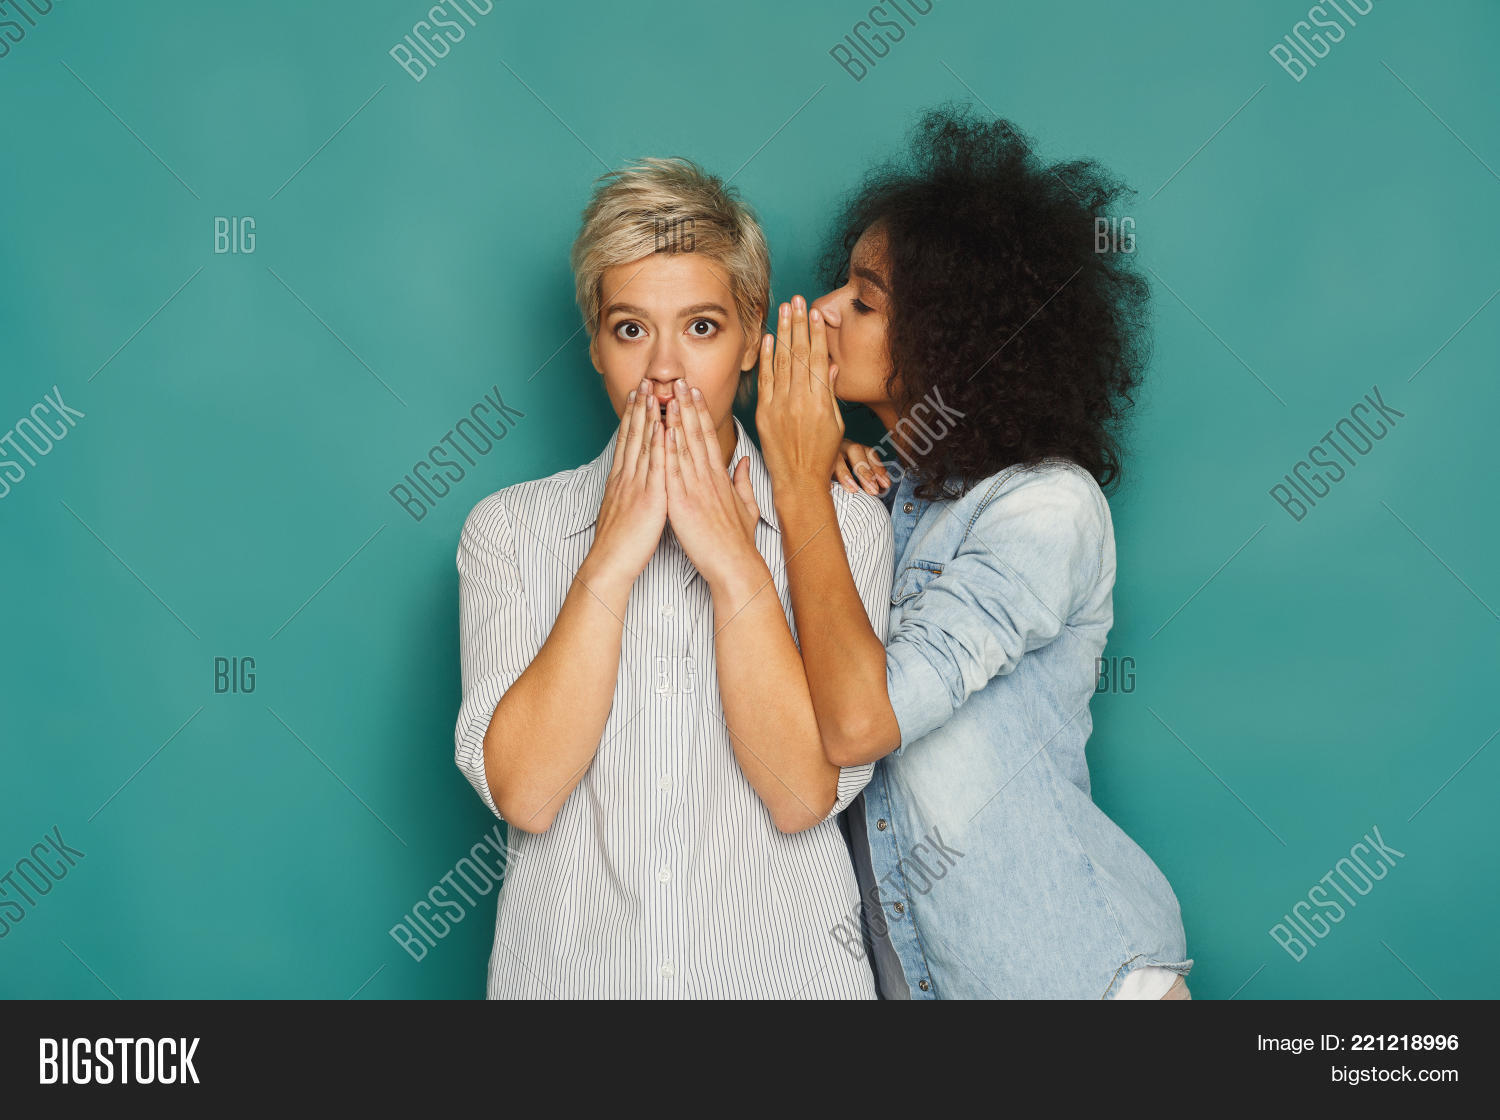 african-american,amazing,background,beautiful,best,black,blue,bonding,caucasian,chat,chatting,conversation,curious,cute,ear,excited,female,friend,friendship,fun,girl,girlfriend,gossip,gossiping,happy,lifestyle,listen,listening,model,multiethnic,news,people,secret,sharing,smile,speak,studio,surprise,talk,tattler,telling,turquoise,two,whispering,woman,women,wonder,young